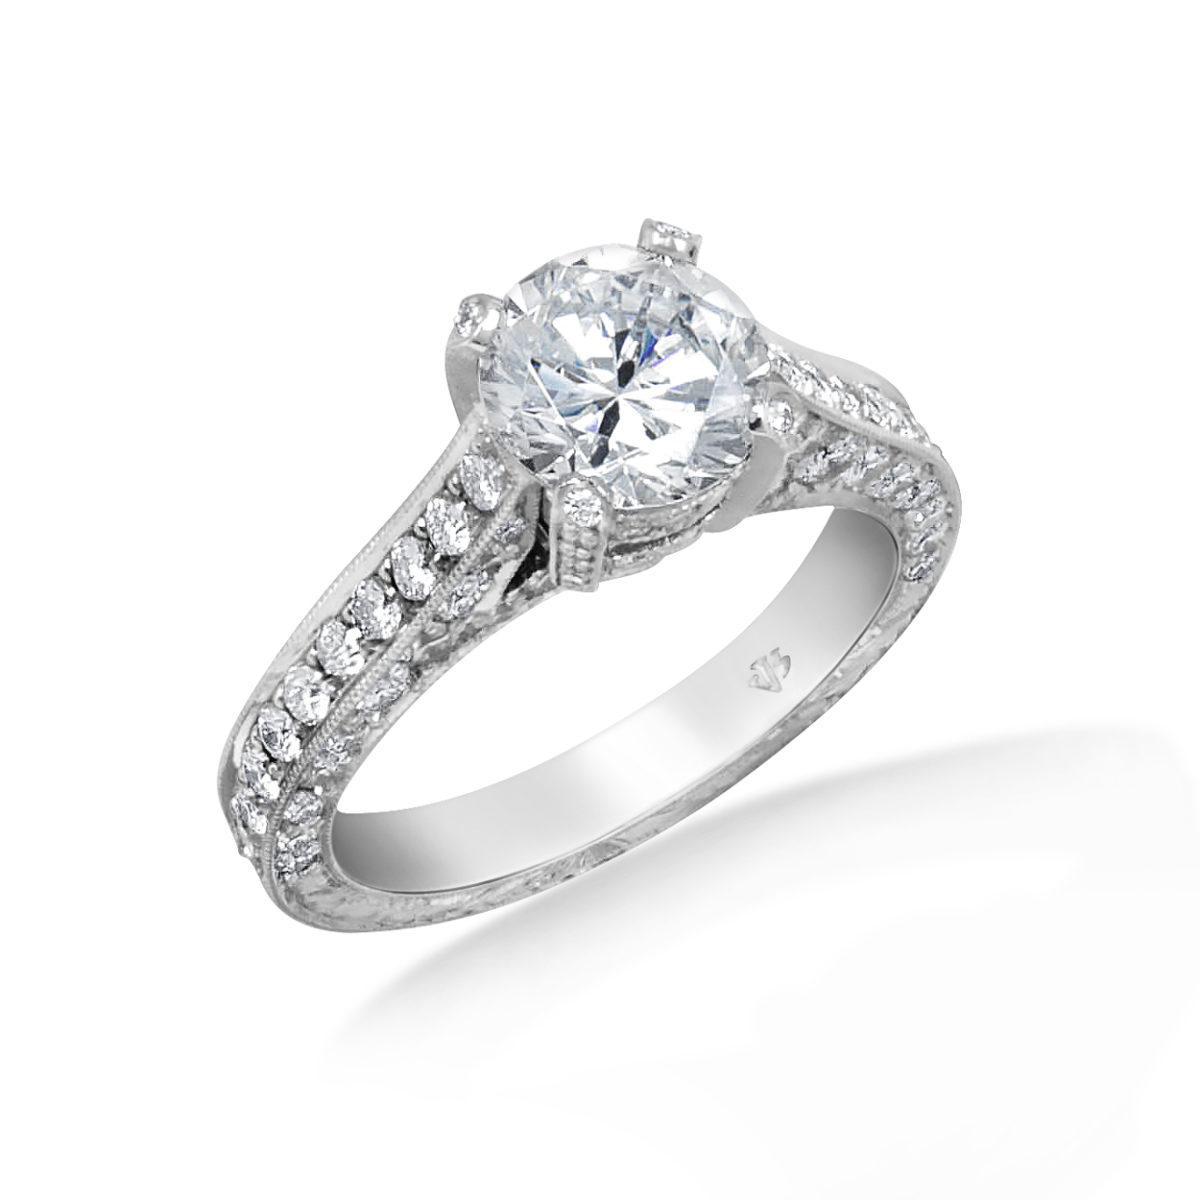 Jack Kelege Cathedral Engagement Ring – Kpr289